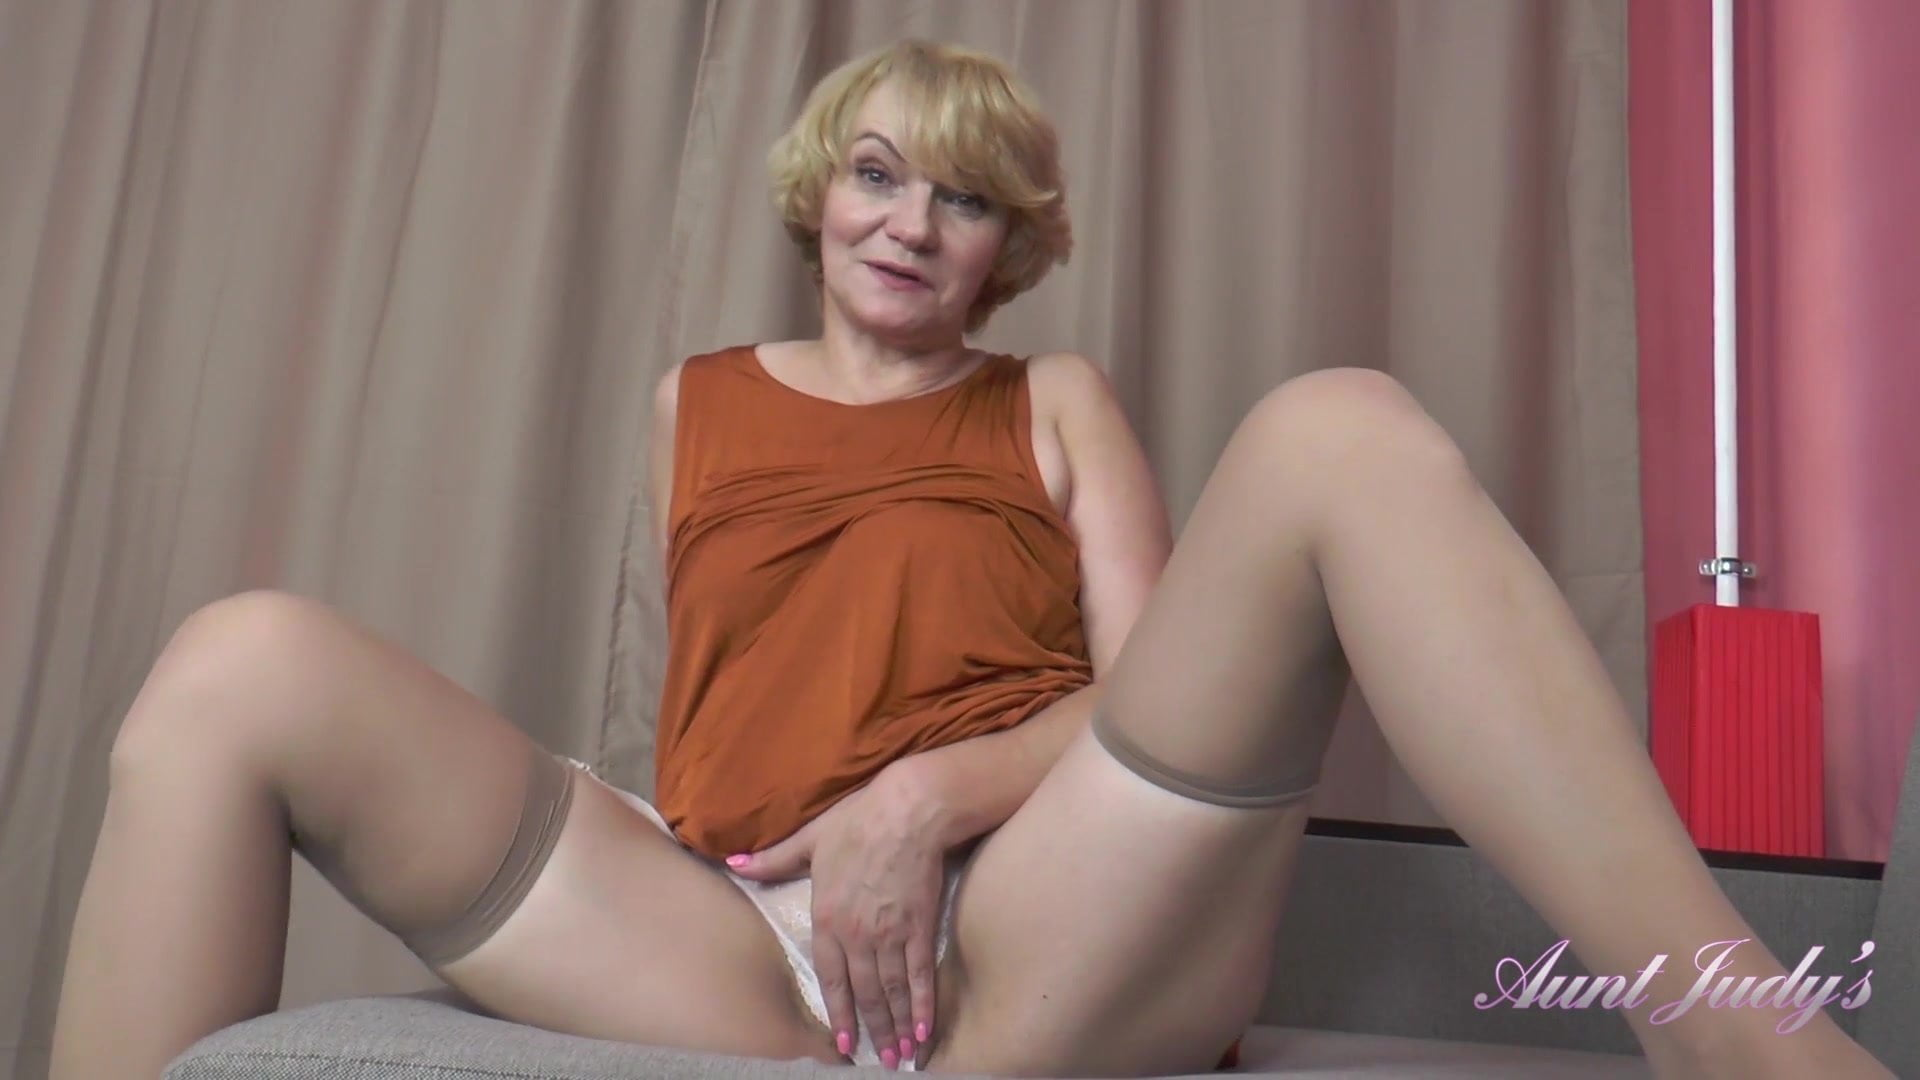 Aliona Nude 56 year old auntie aliona sucks your cock and jerks you off